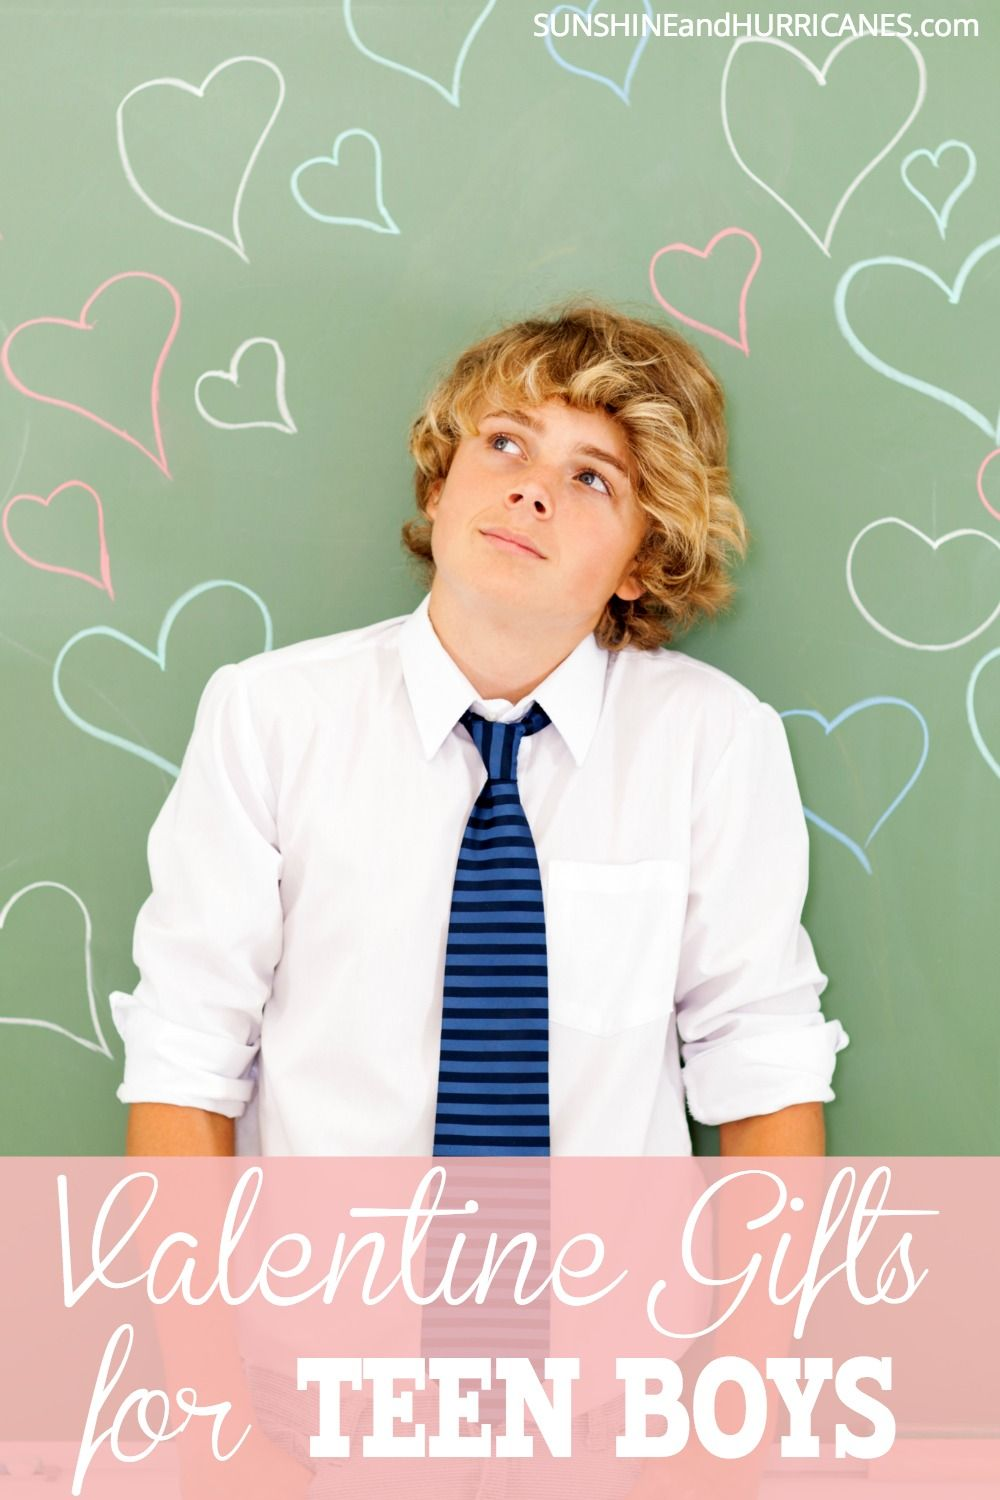 Valentine Gifts for Teen Boys